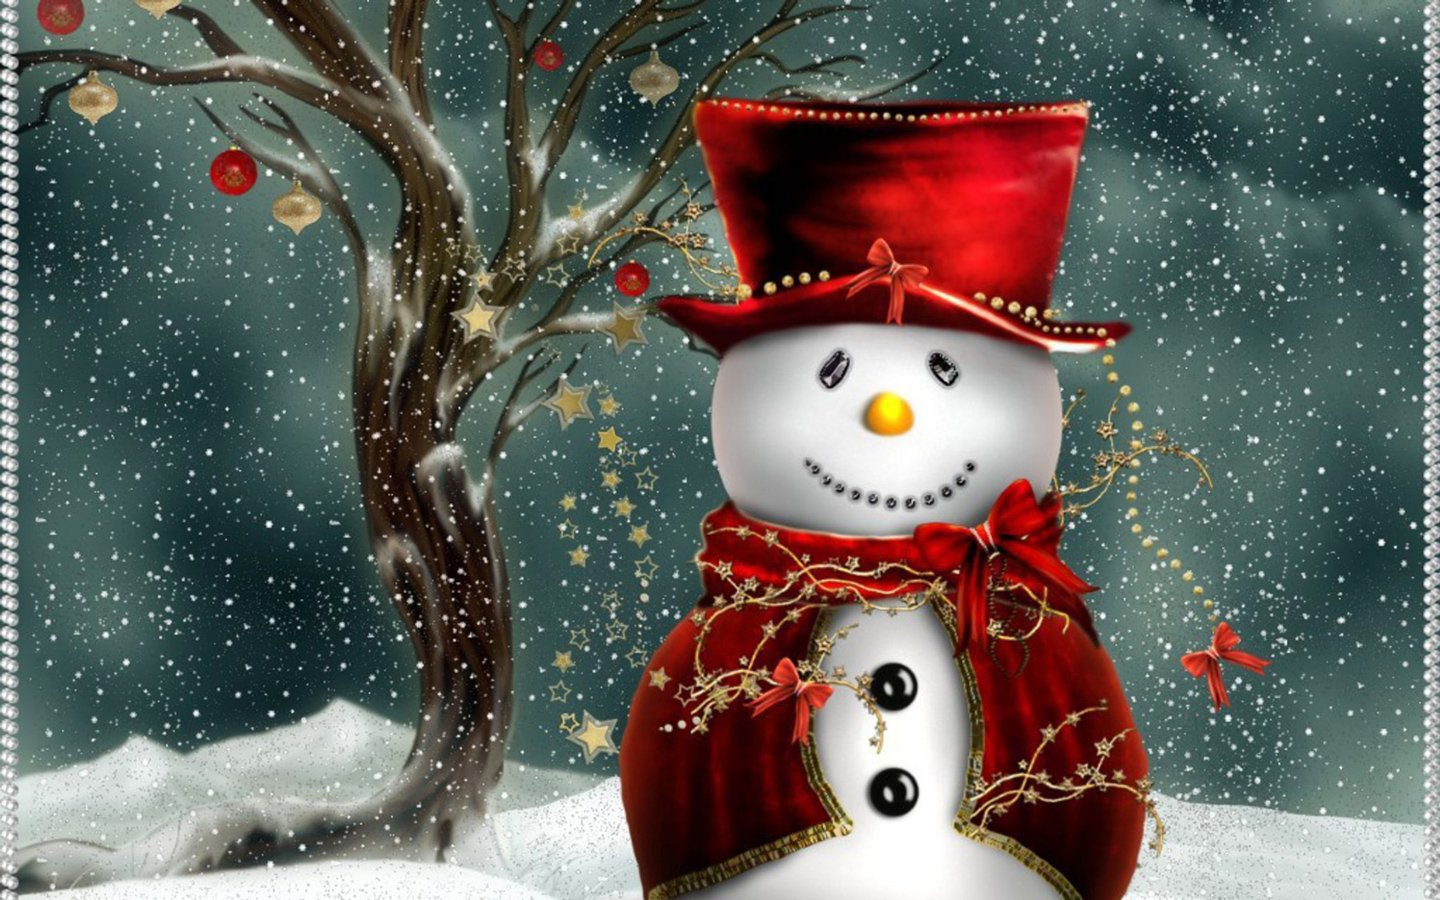 desktop wallpaper of cute christmas snowman computer desktop 1440x900